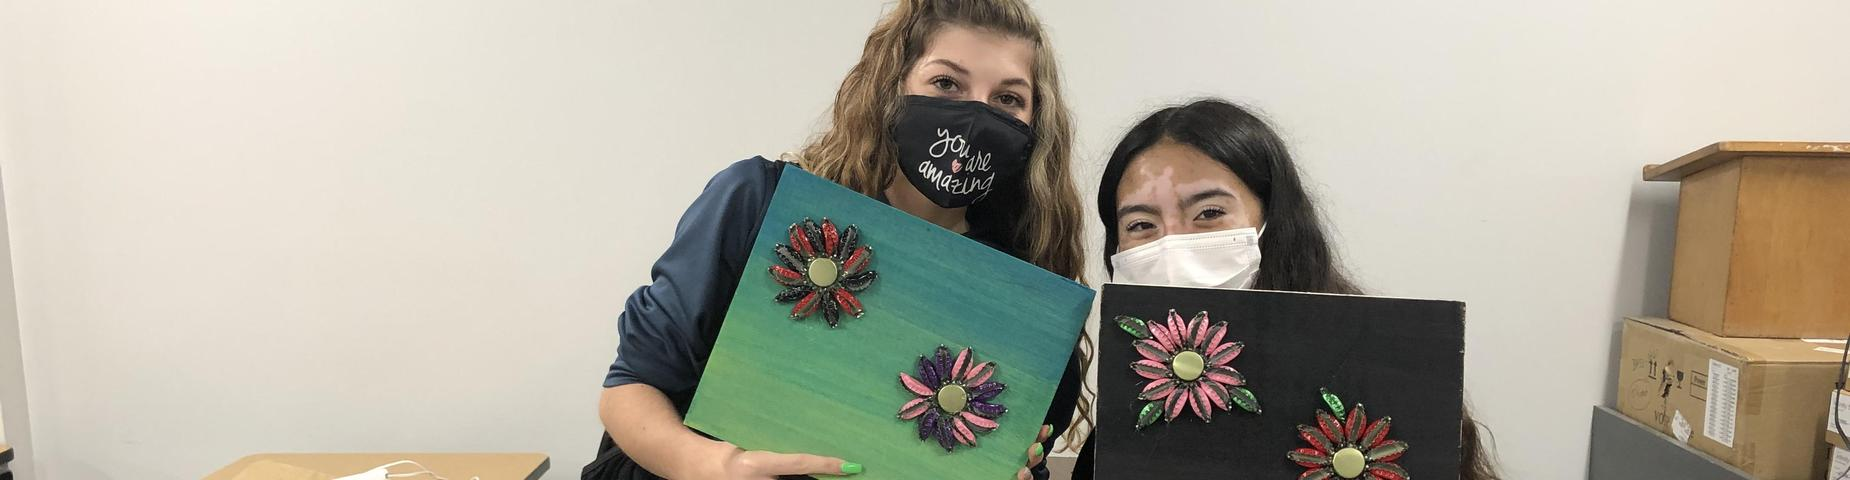 MHS LINKS students showing off their art work using colored bottle caps.